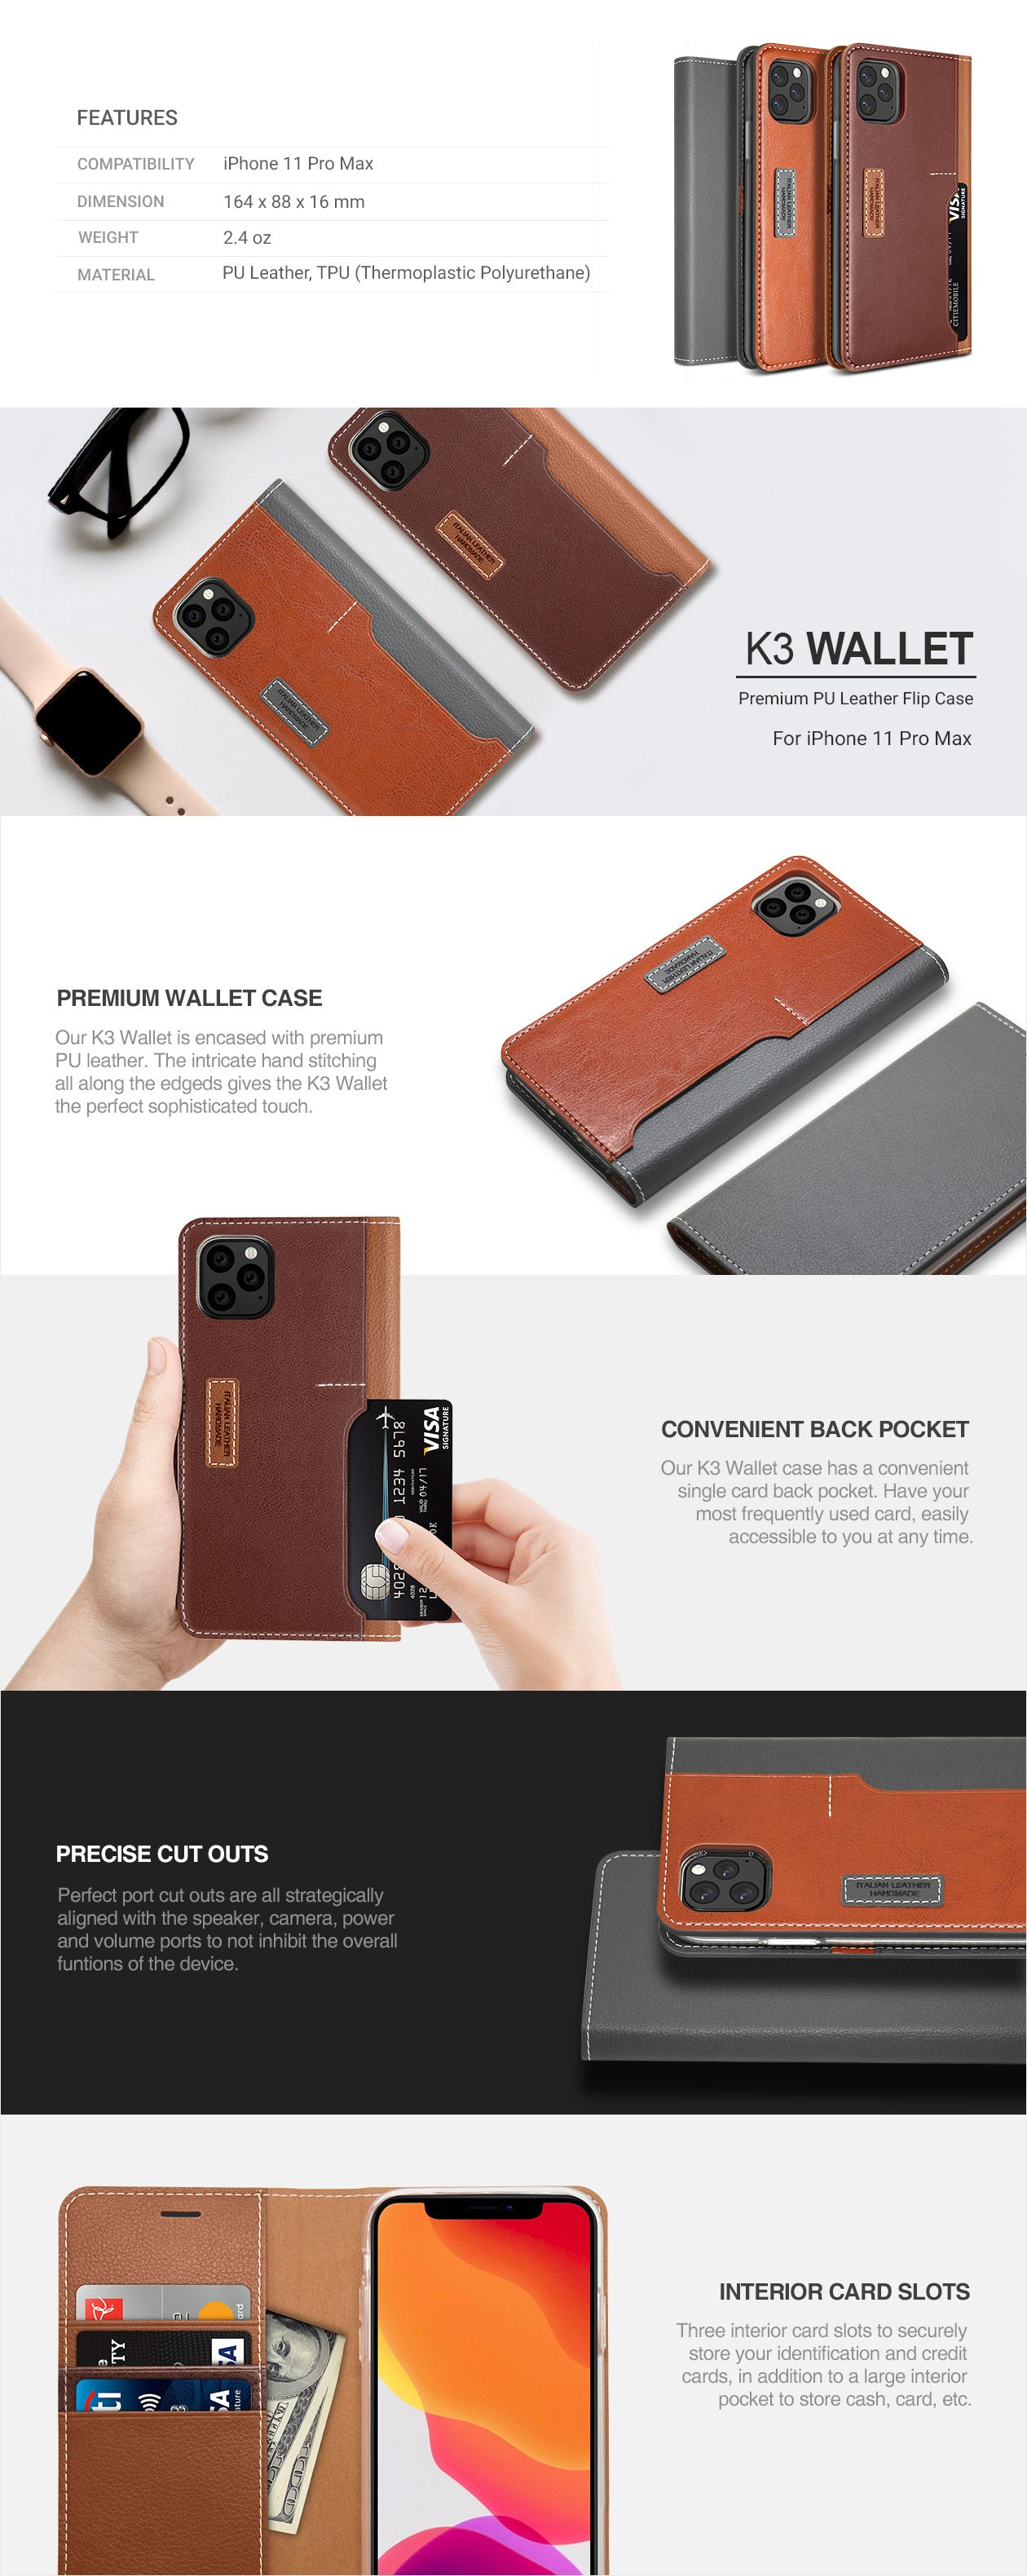 Obliq iPhone 11 Pro Max Case K3 Wallet